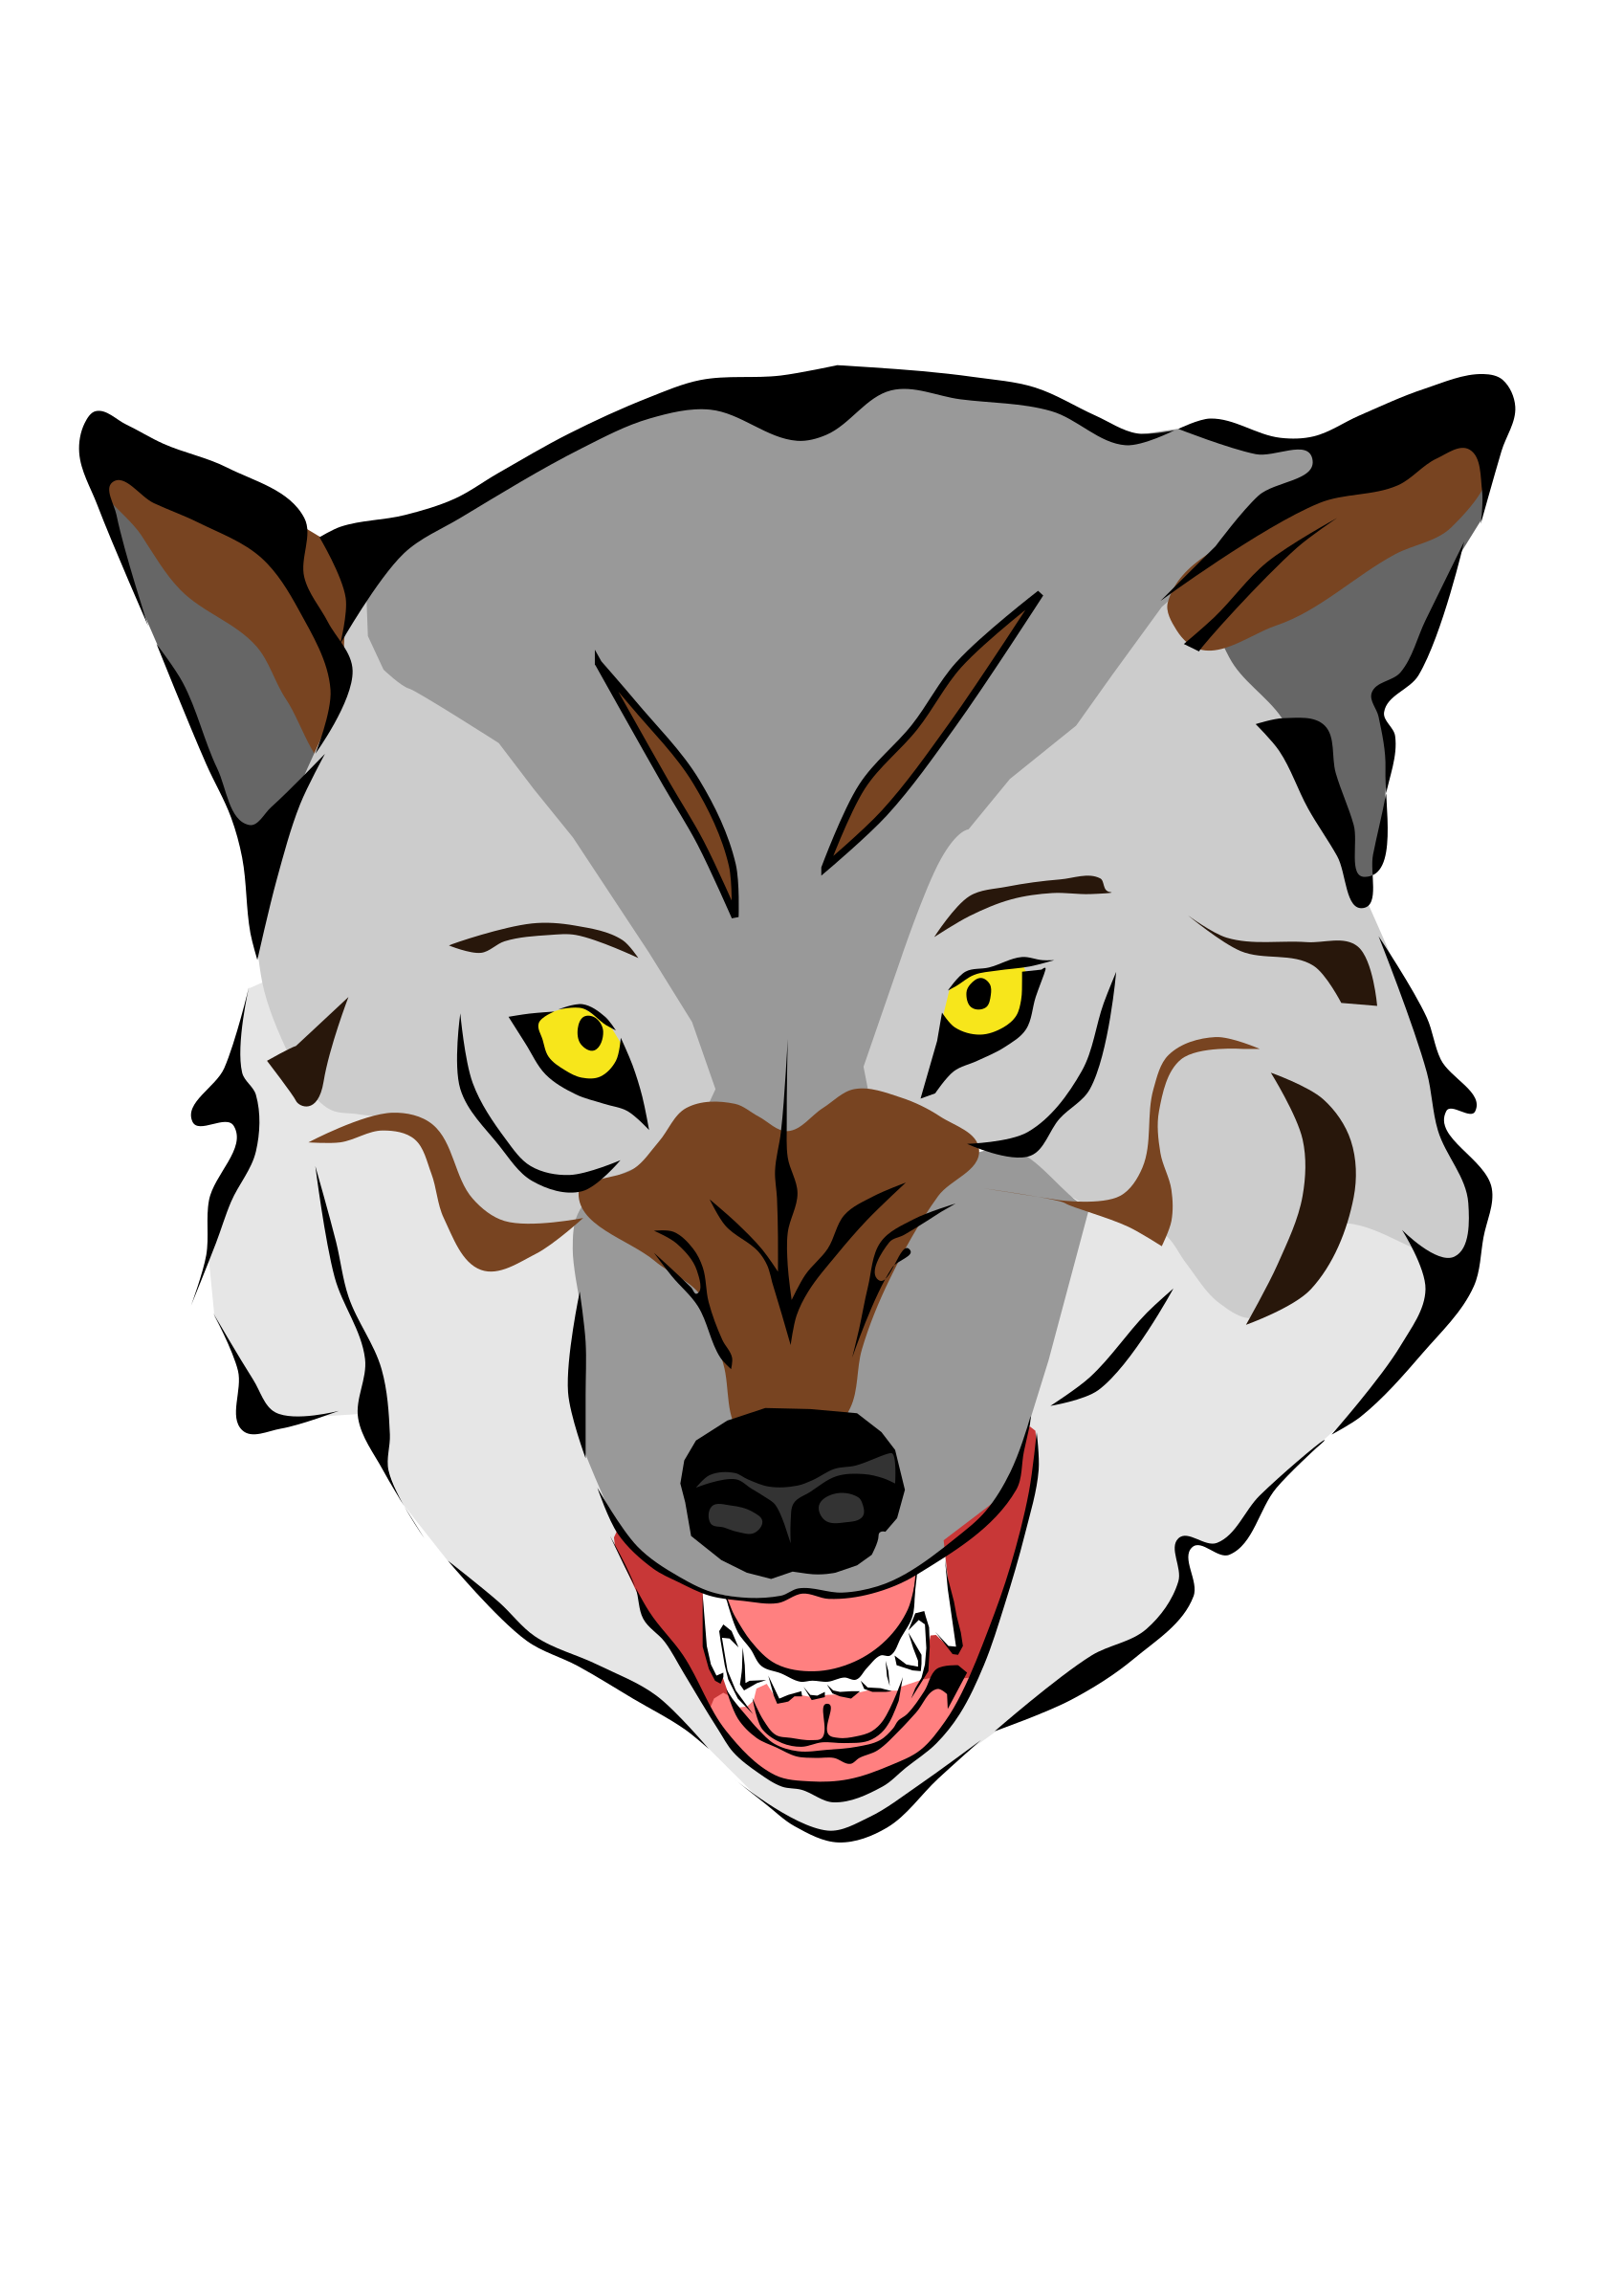 Snarling dog clipart graphic library Gray Wolf Clipart Wolf Head Free collection | Download and share ... graphic library